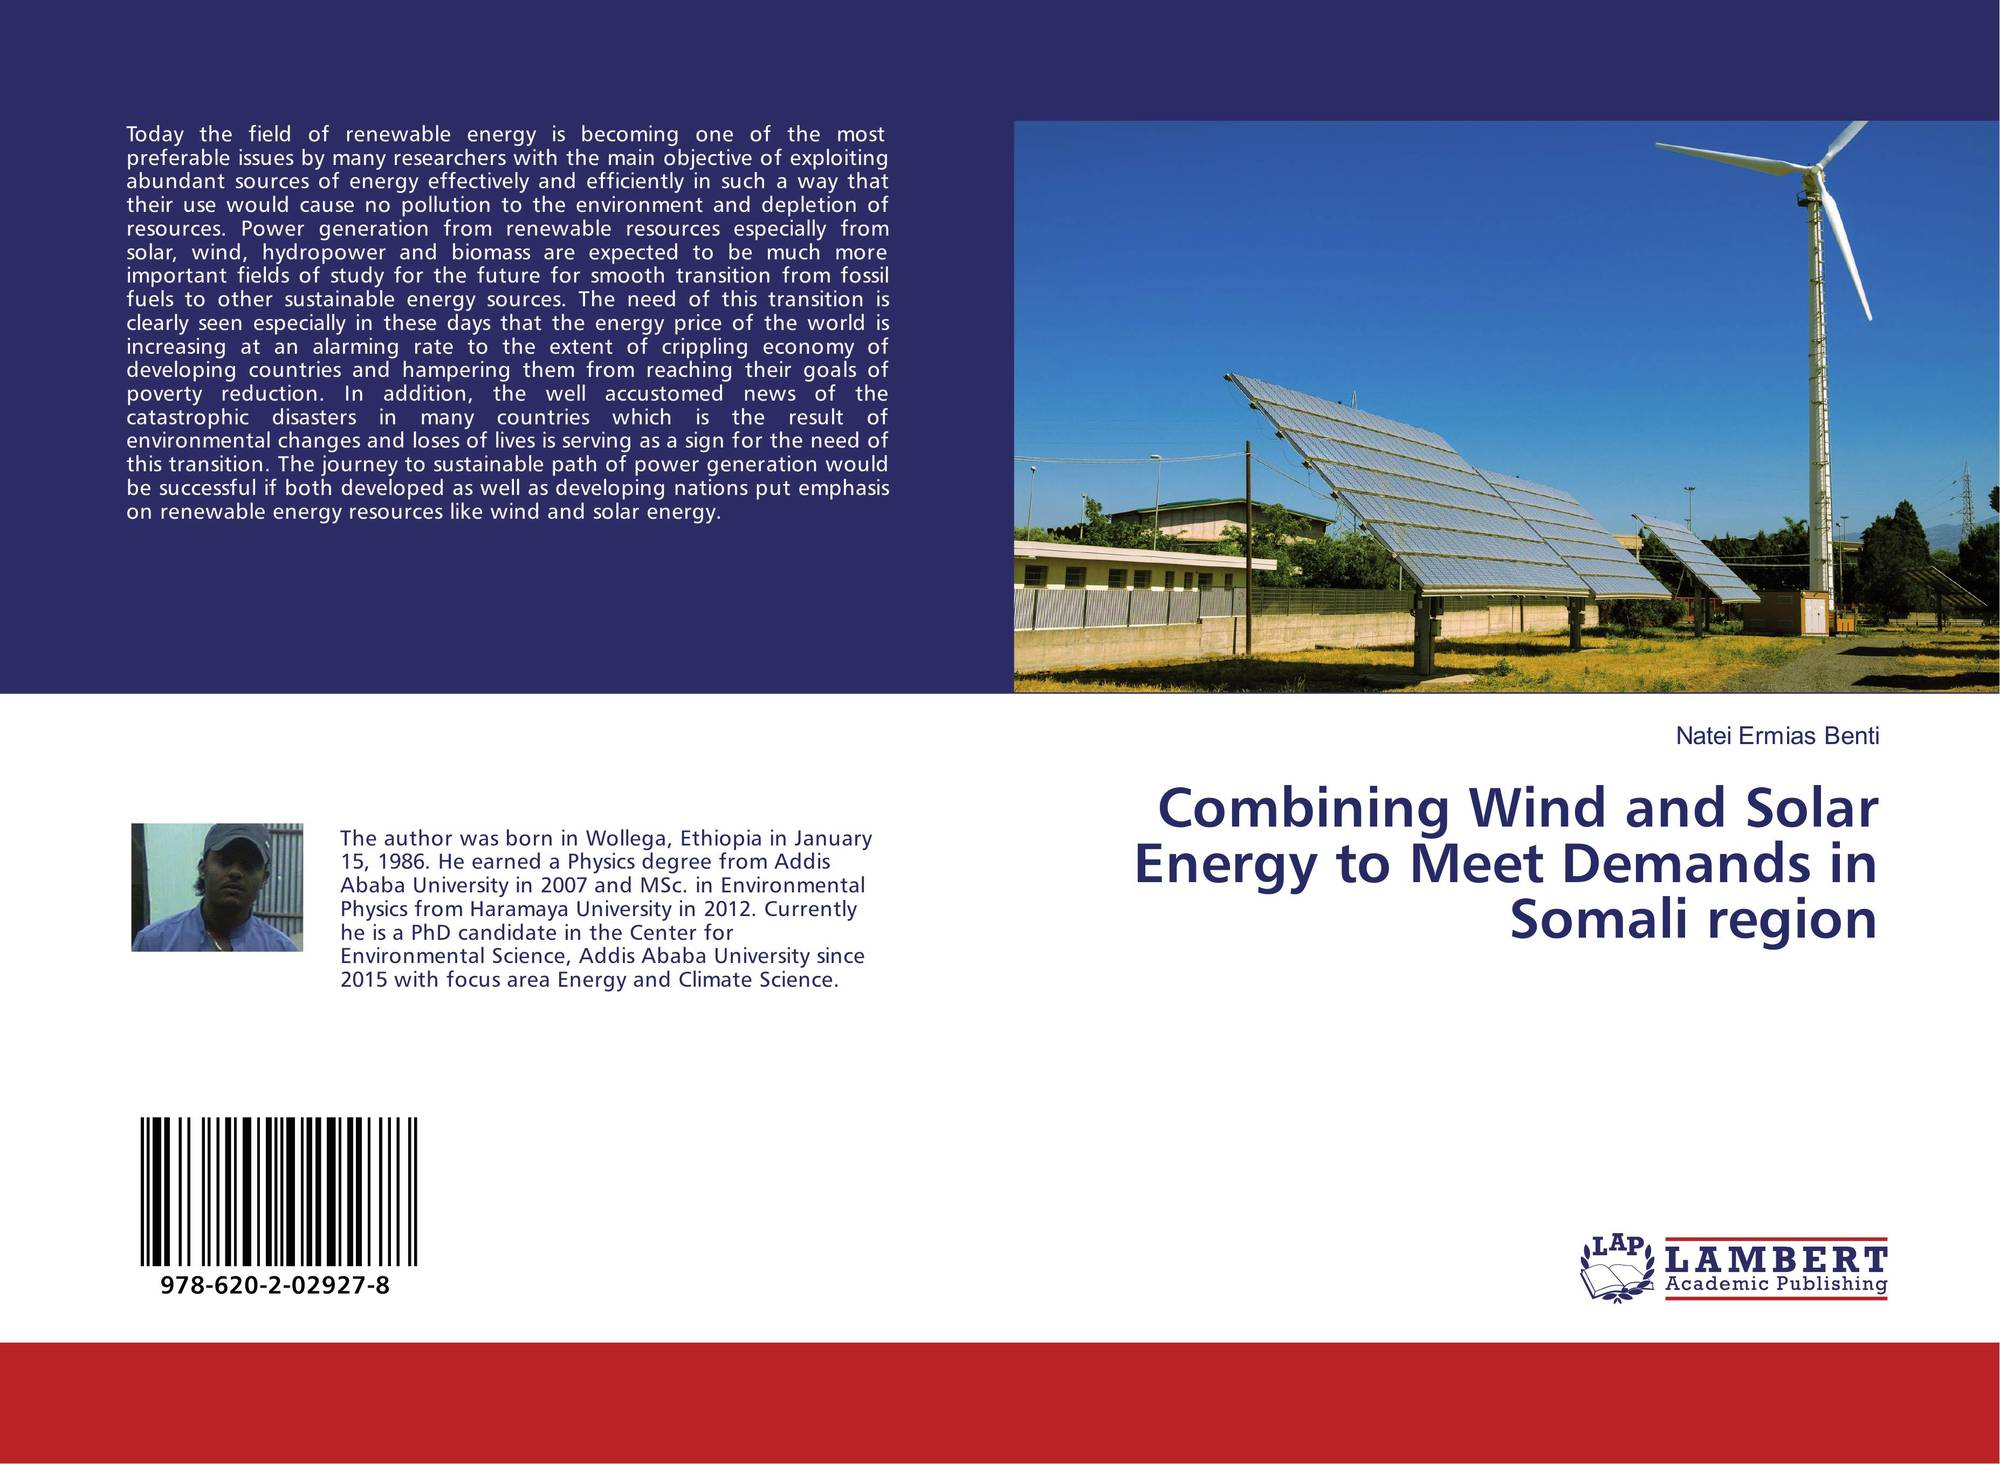 Combining Wind and Solar Energy to Meet Demands in Somali